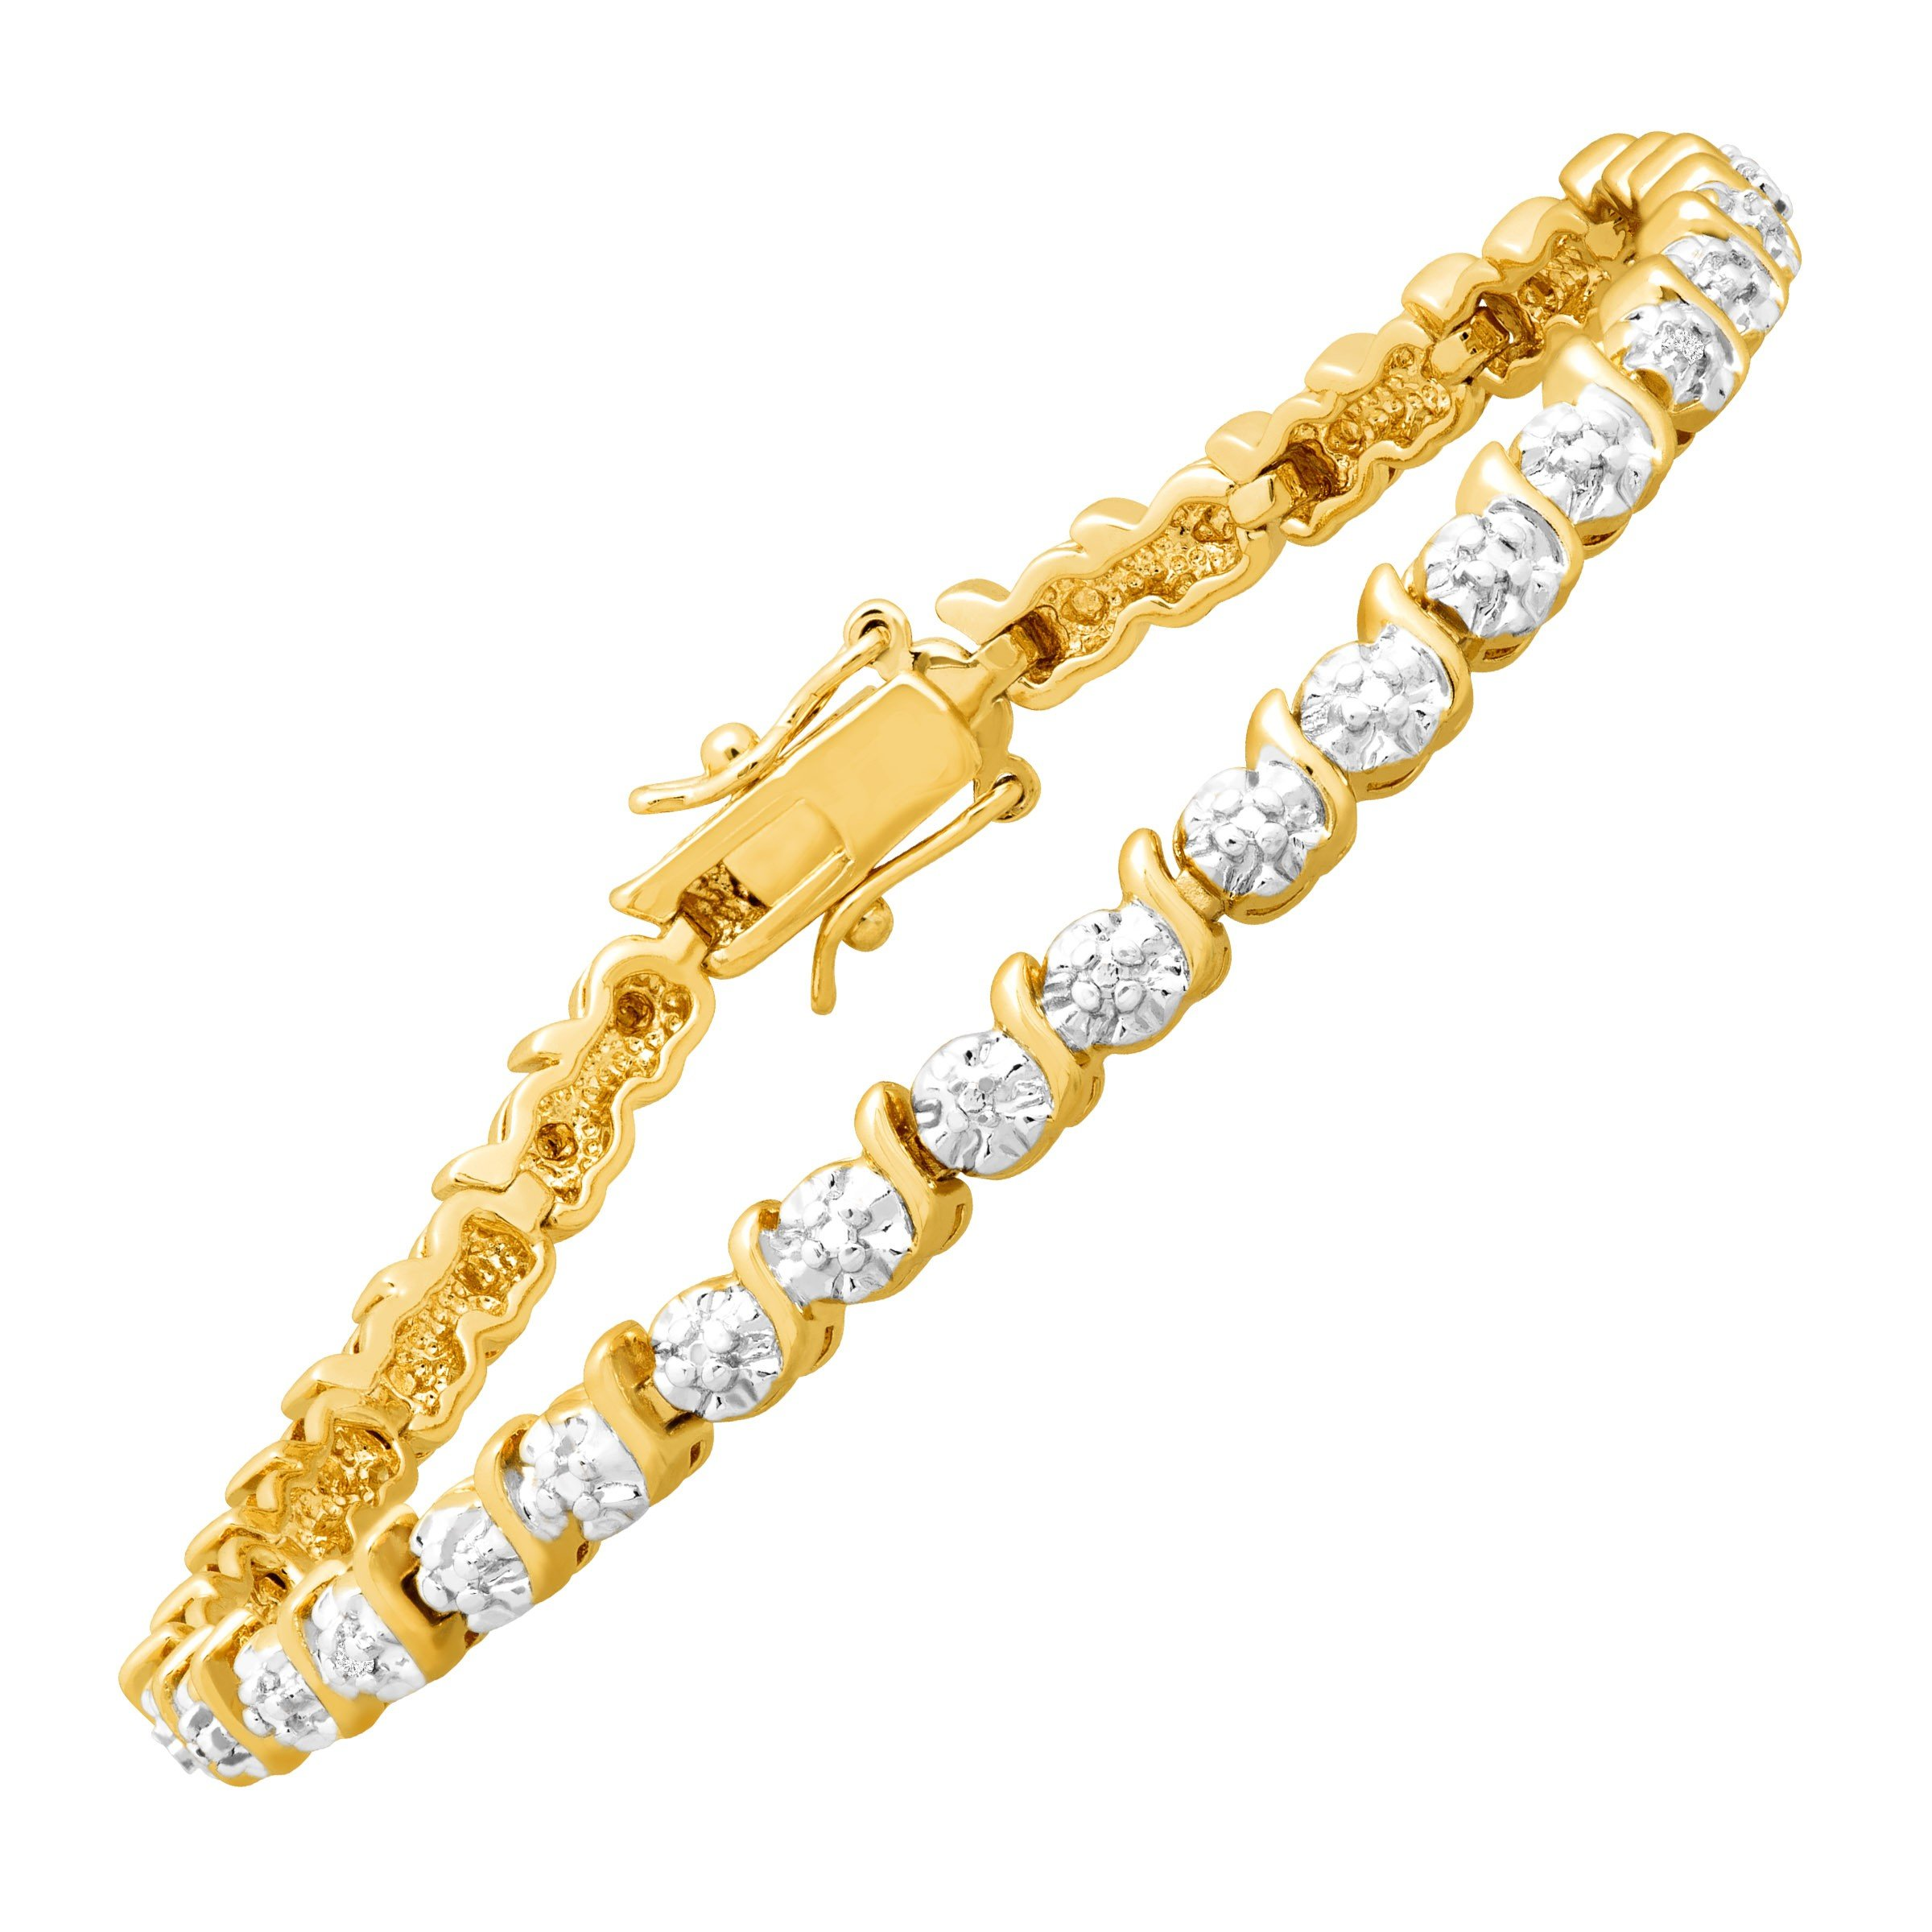 Tennis Bracelet with Diamonds in 14K Gold-Plated Brass, 7.5''